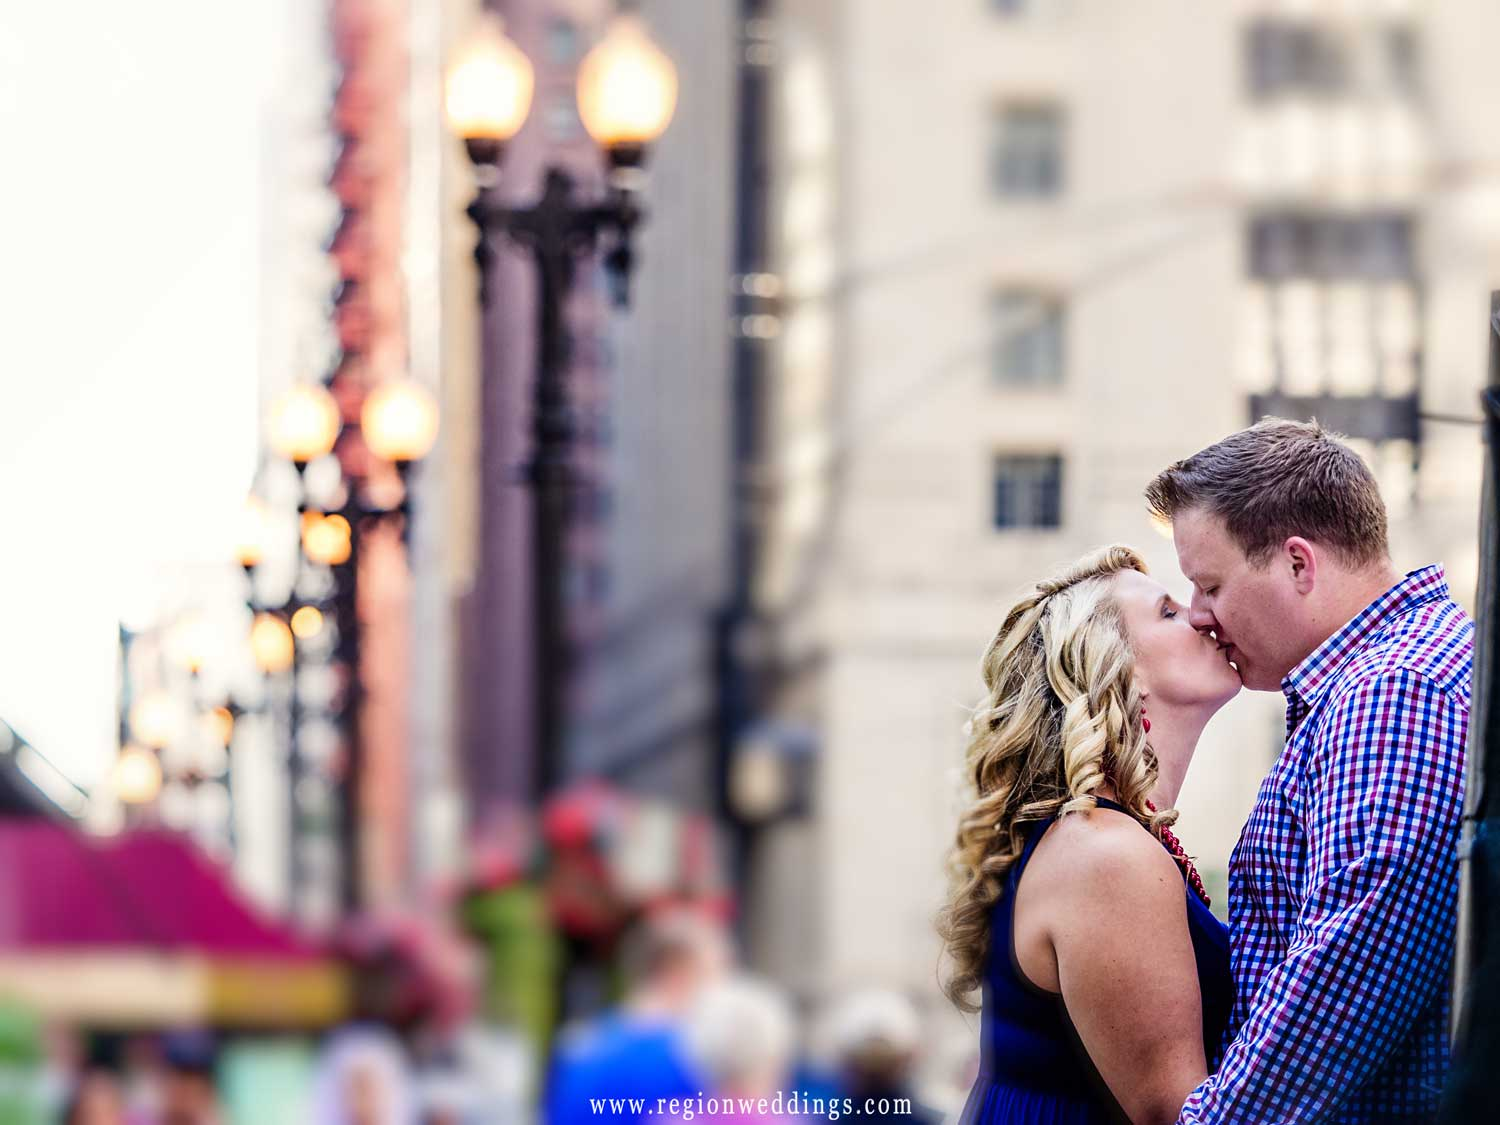 A couple in love kisses beneath the street lamps of State Street.